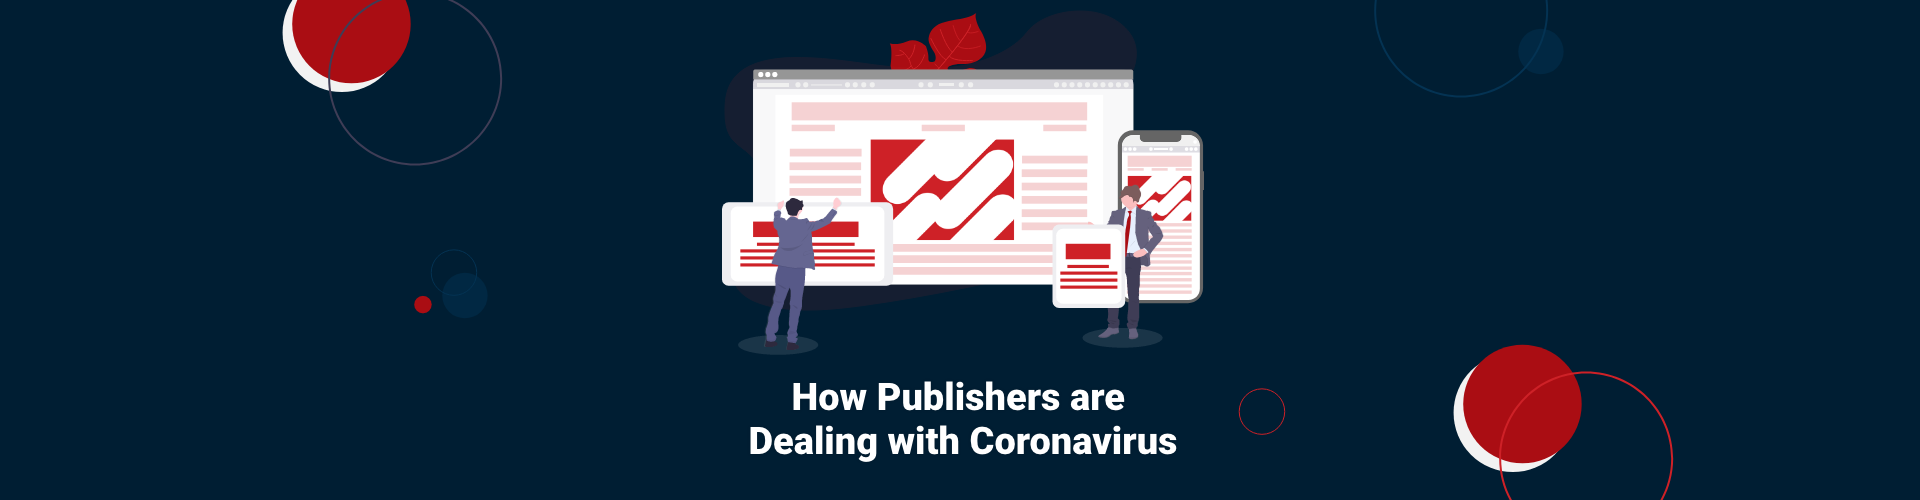 How Publishers are Dealing with Coronavirus